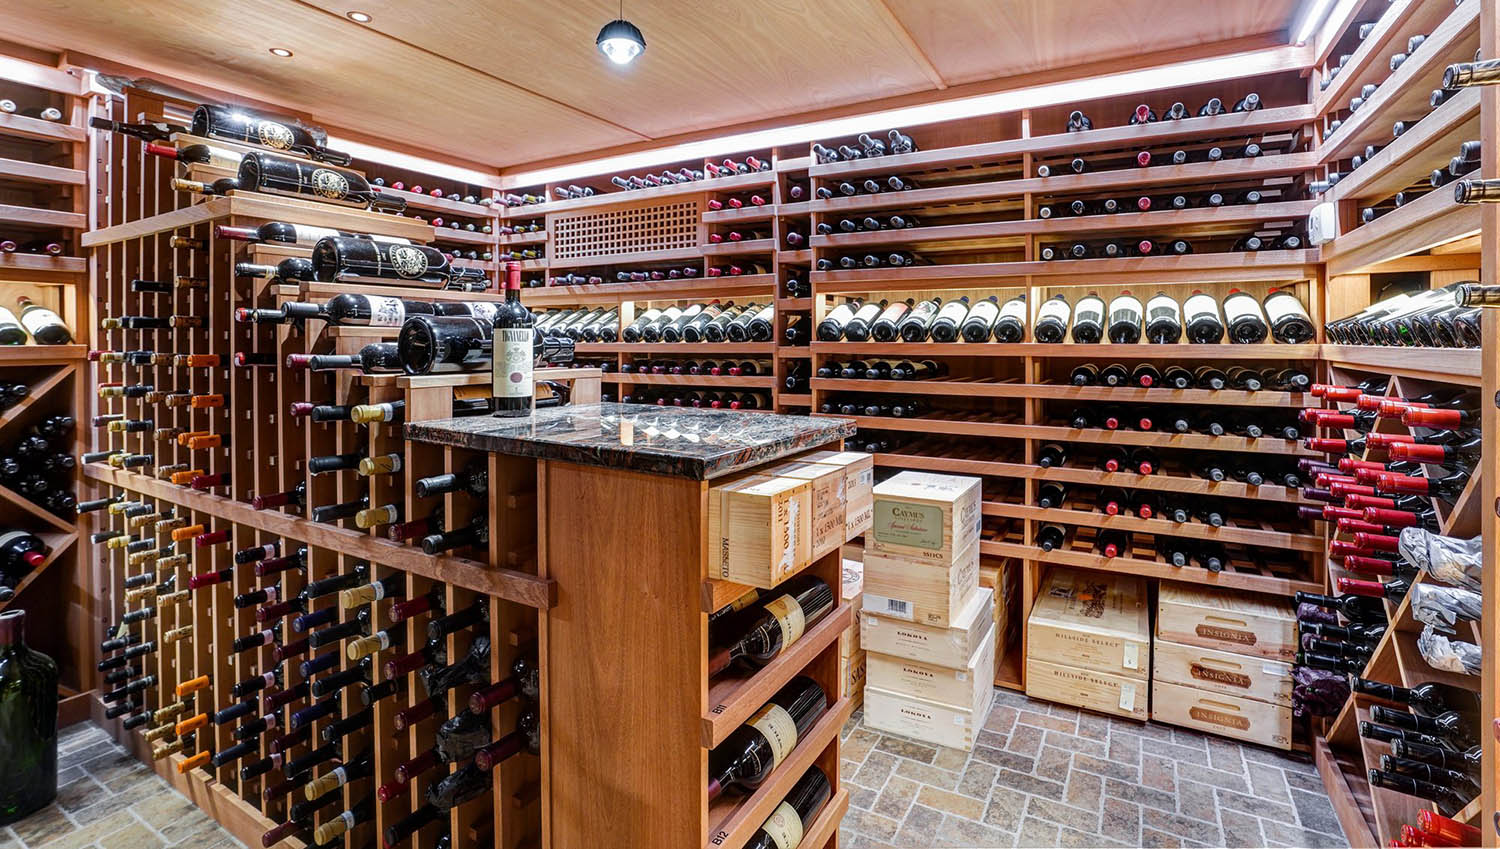 Large wine cellar with wood racks and tasting counter.